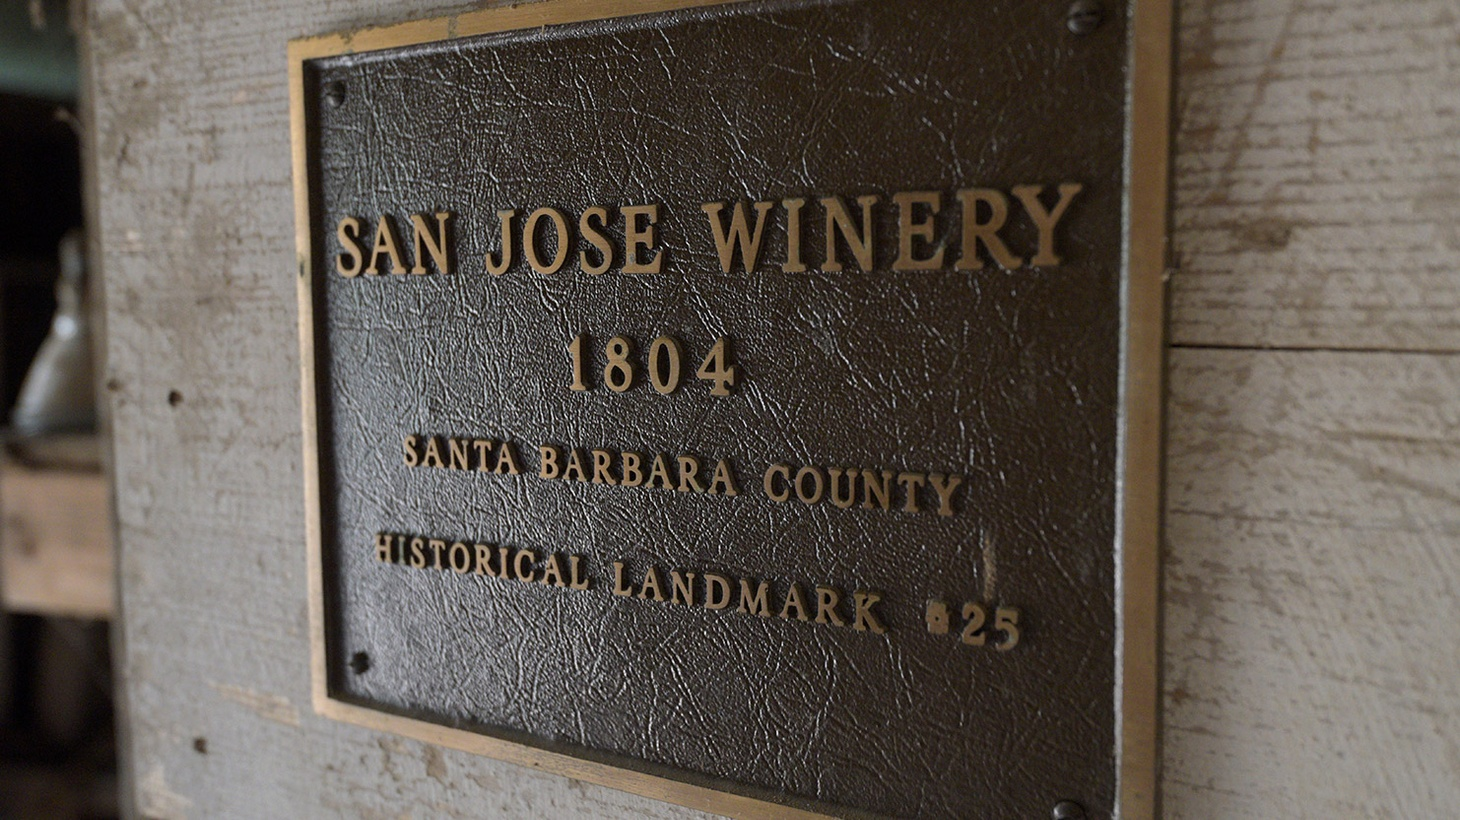 You may think of Santa Barbara's winemaking industry as relatively new, but in fact, its roots go far back.